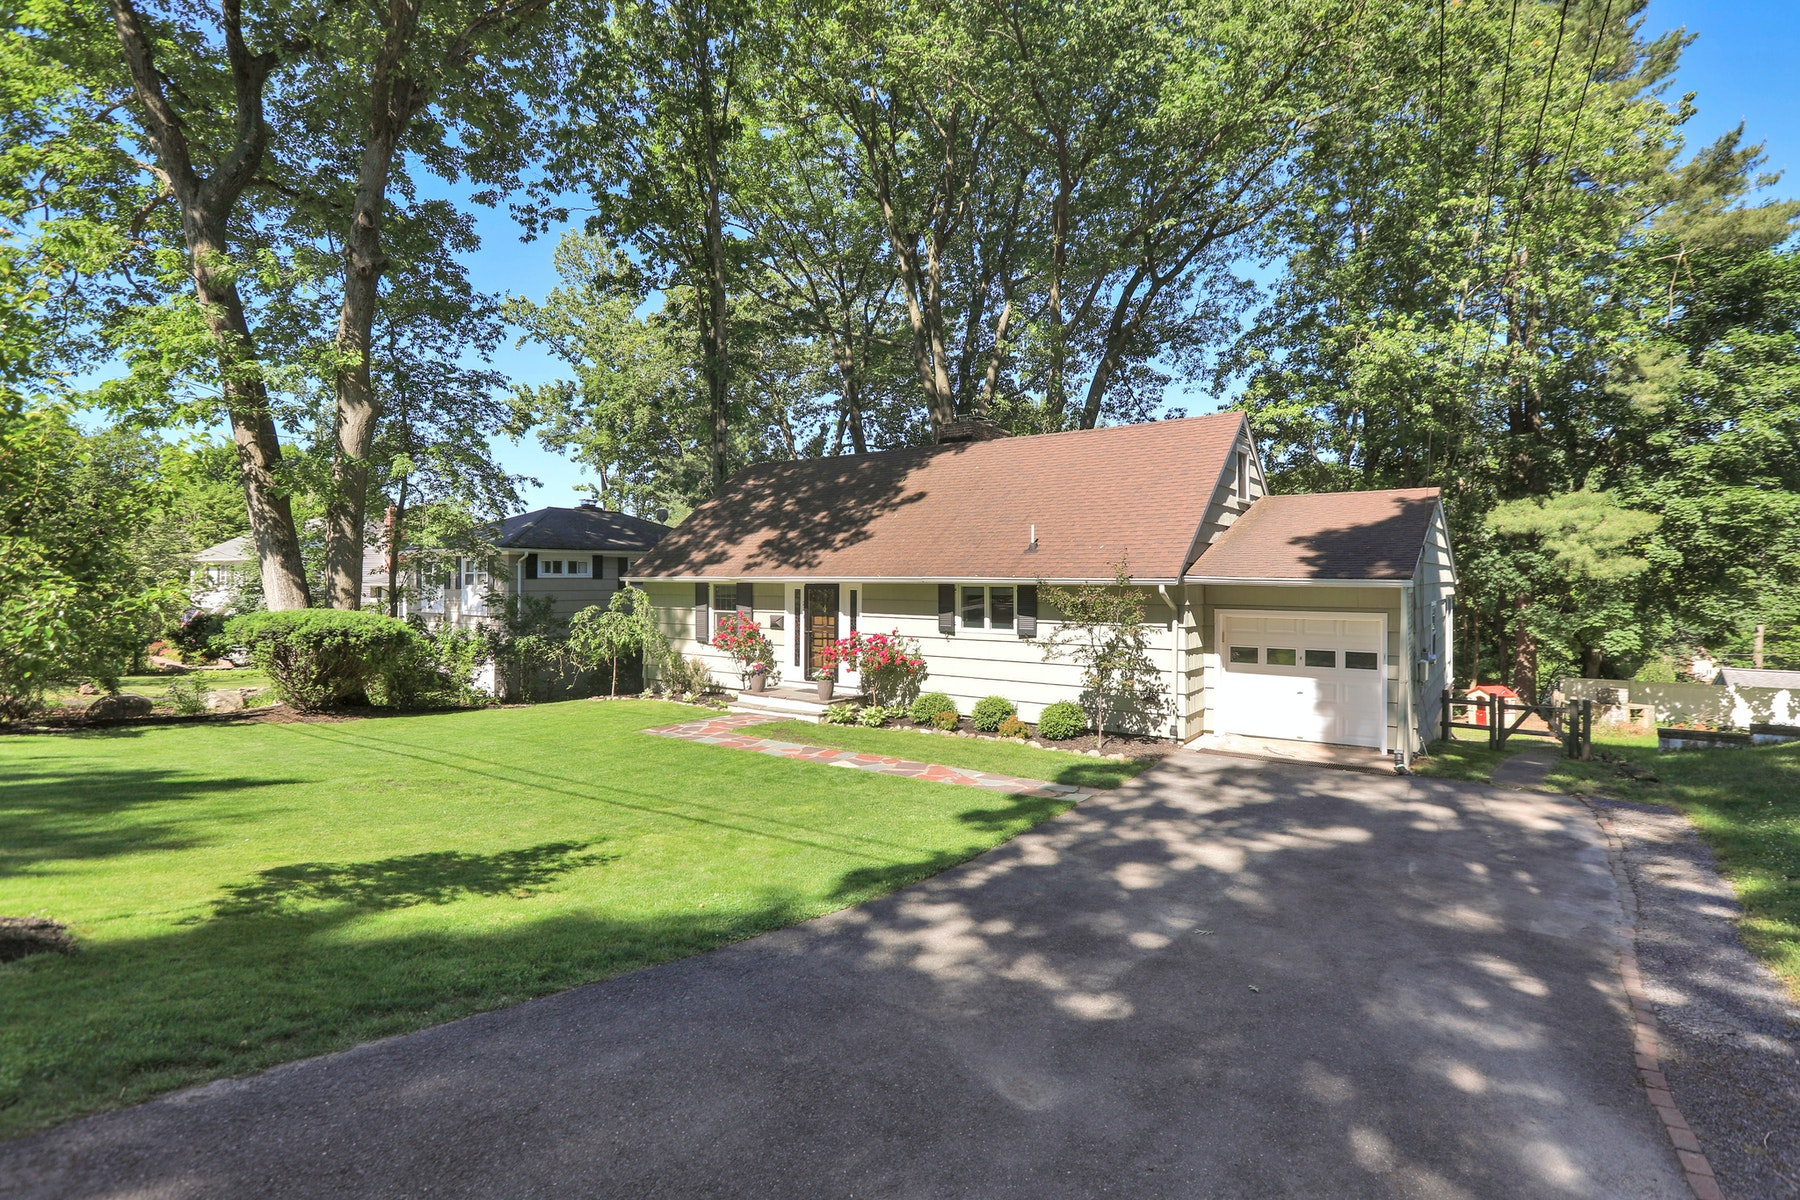 Single Family Homes for Sale at Welcome Home 21 Buckingham Drive Ramsey, New Jersey 07446 United States